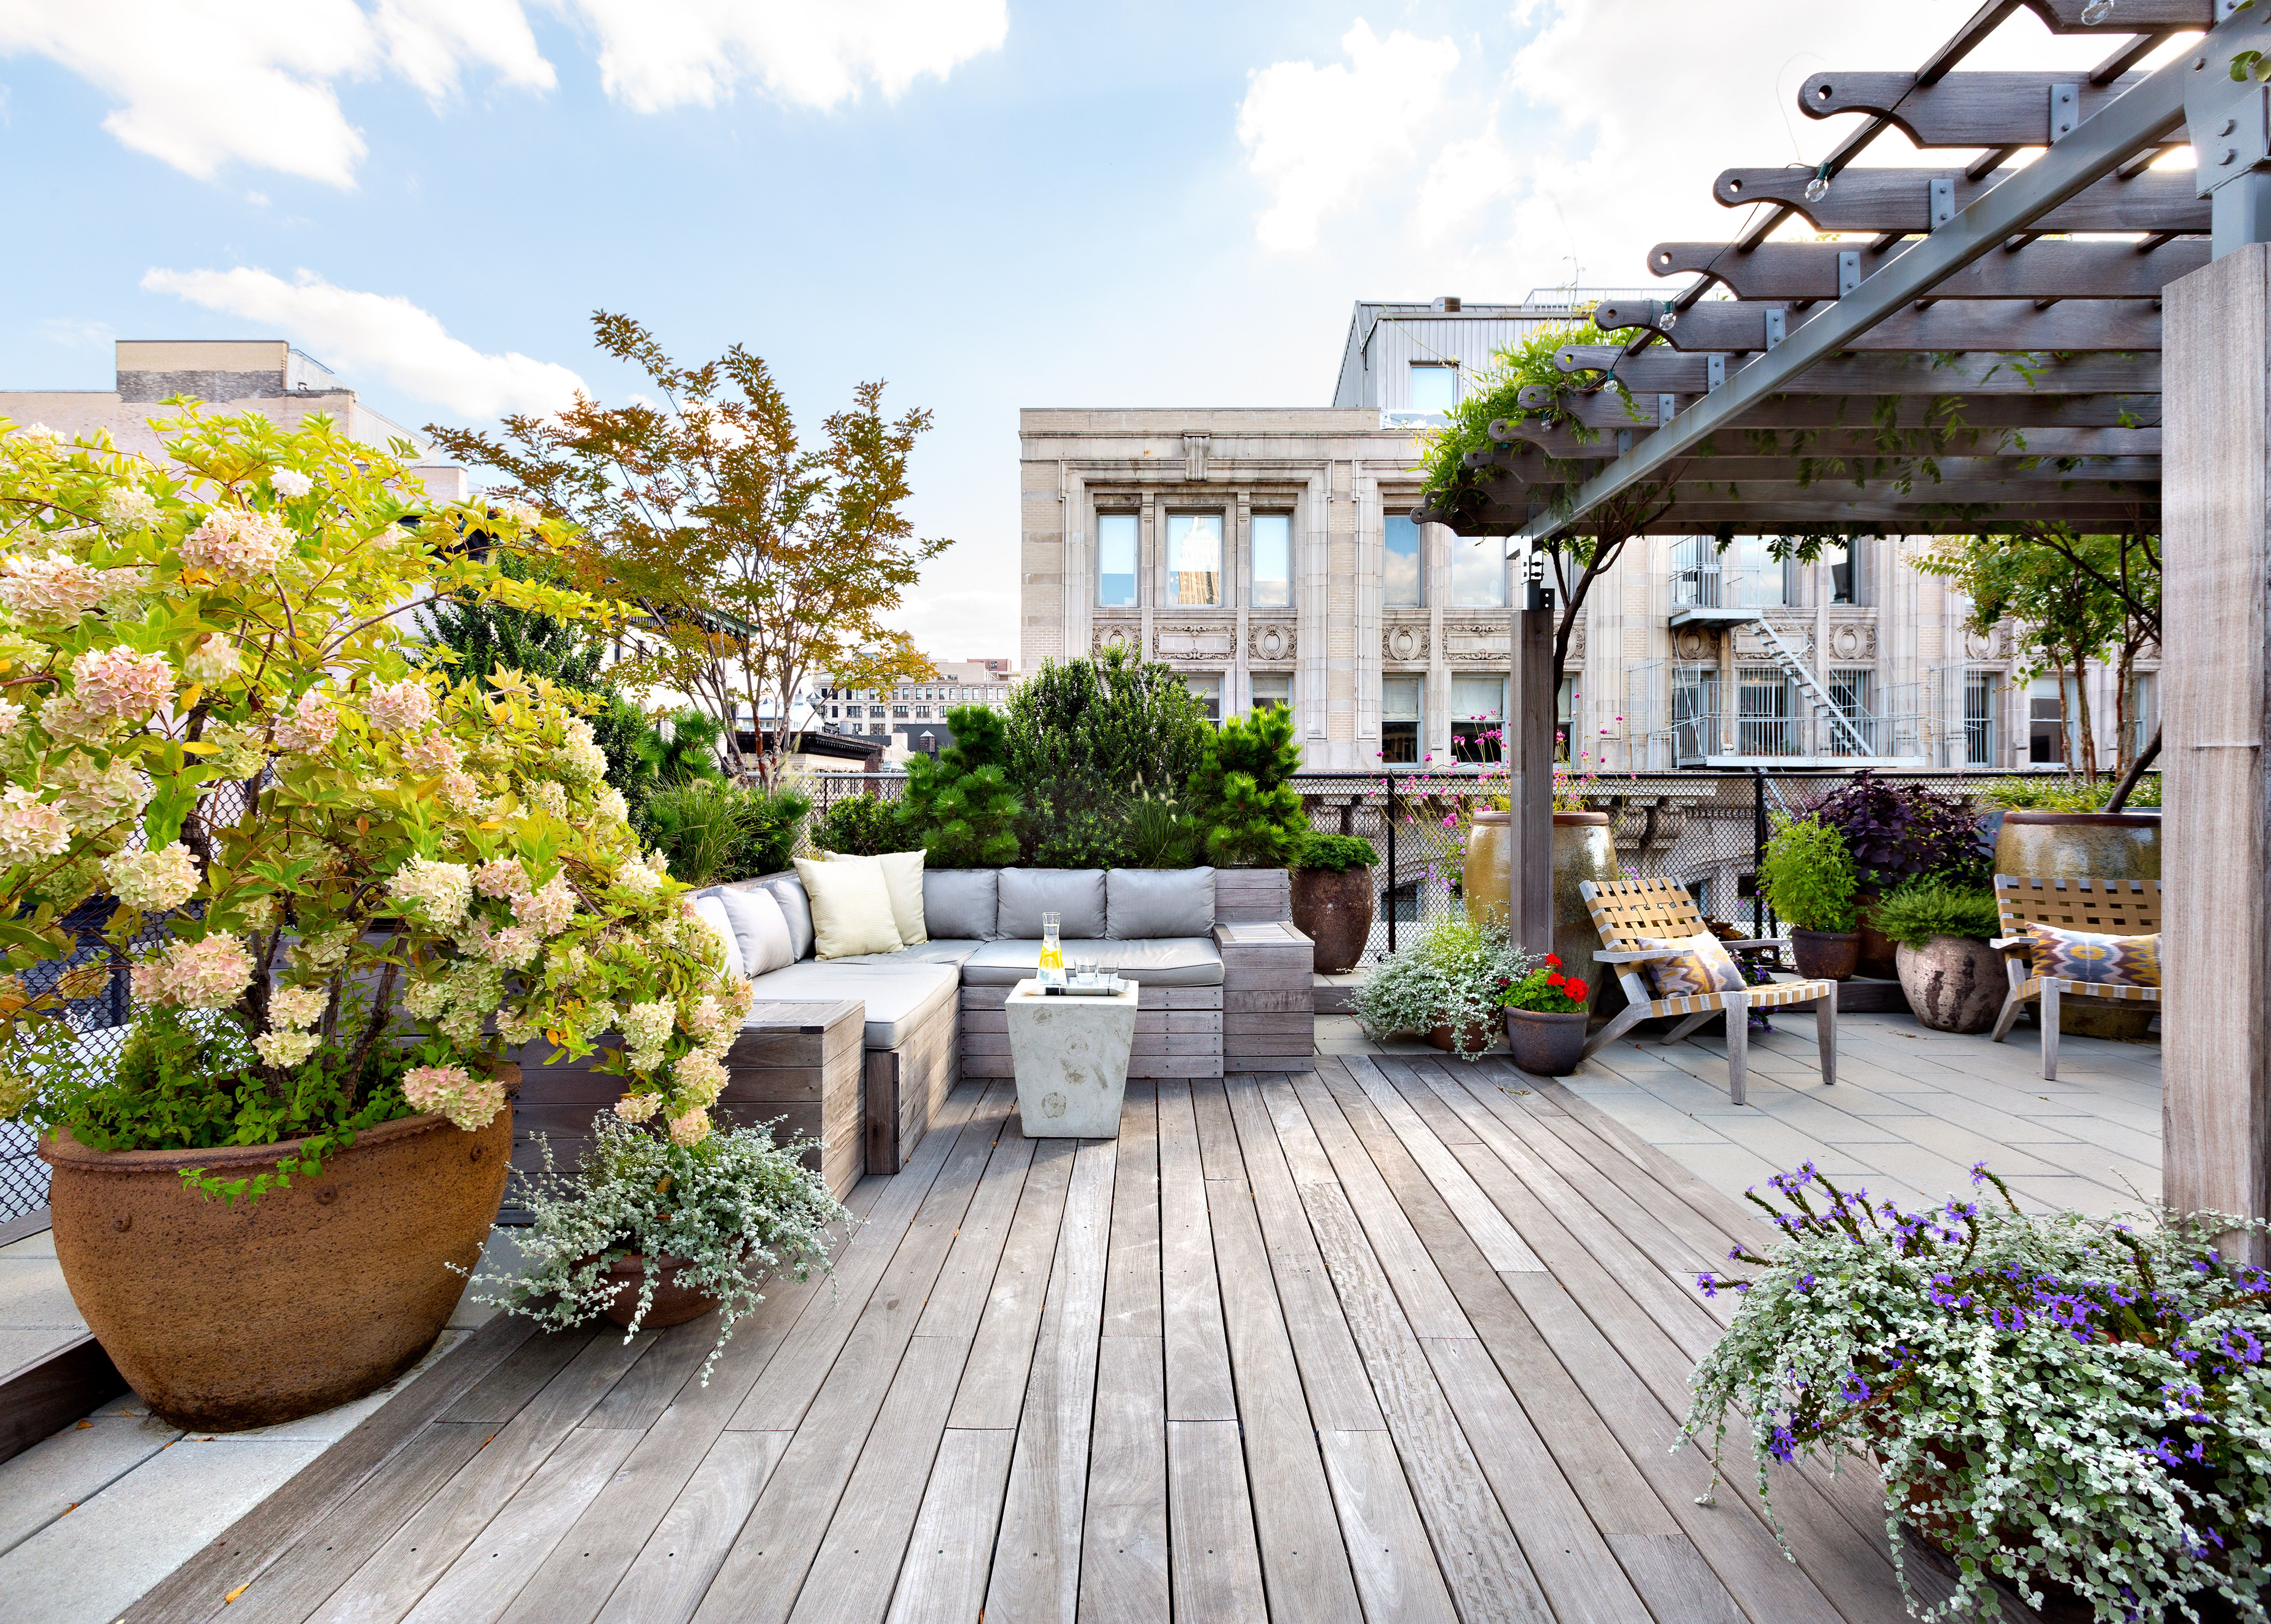 New York city rooftop terrace designed by